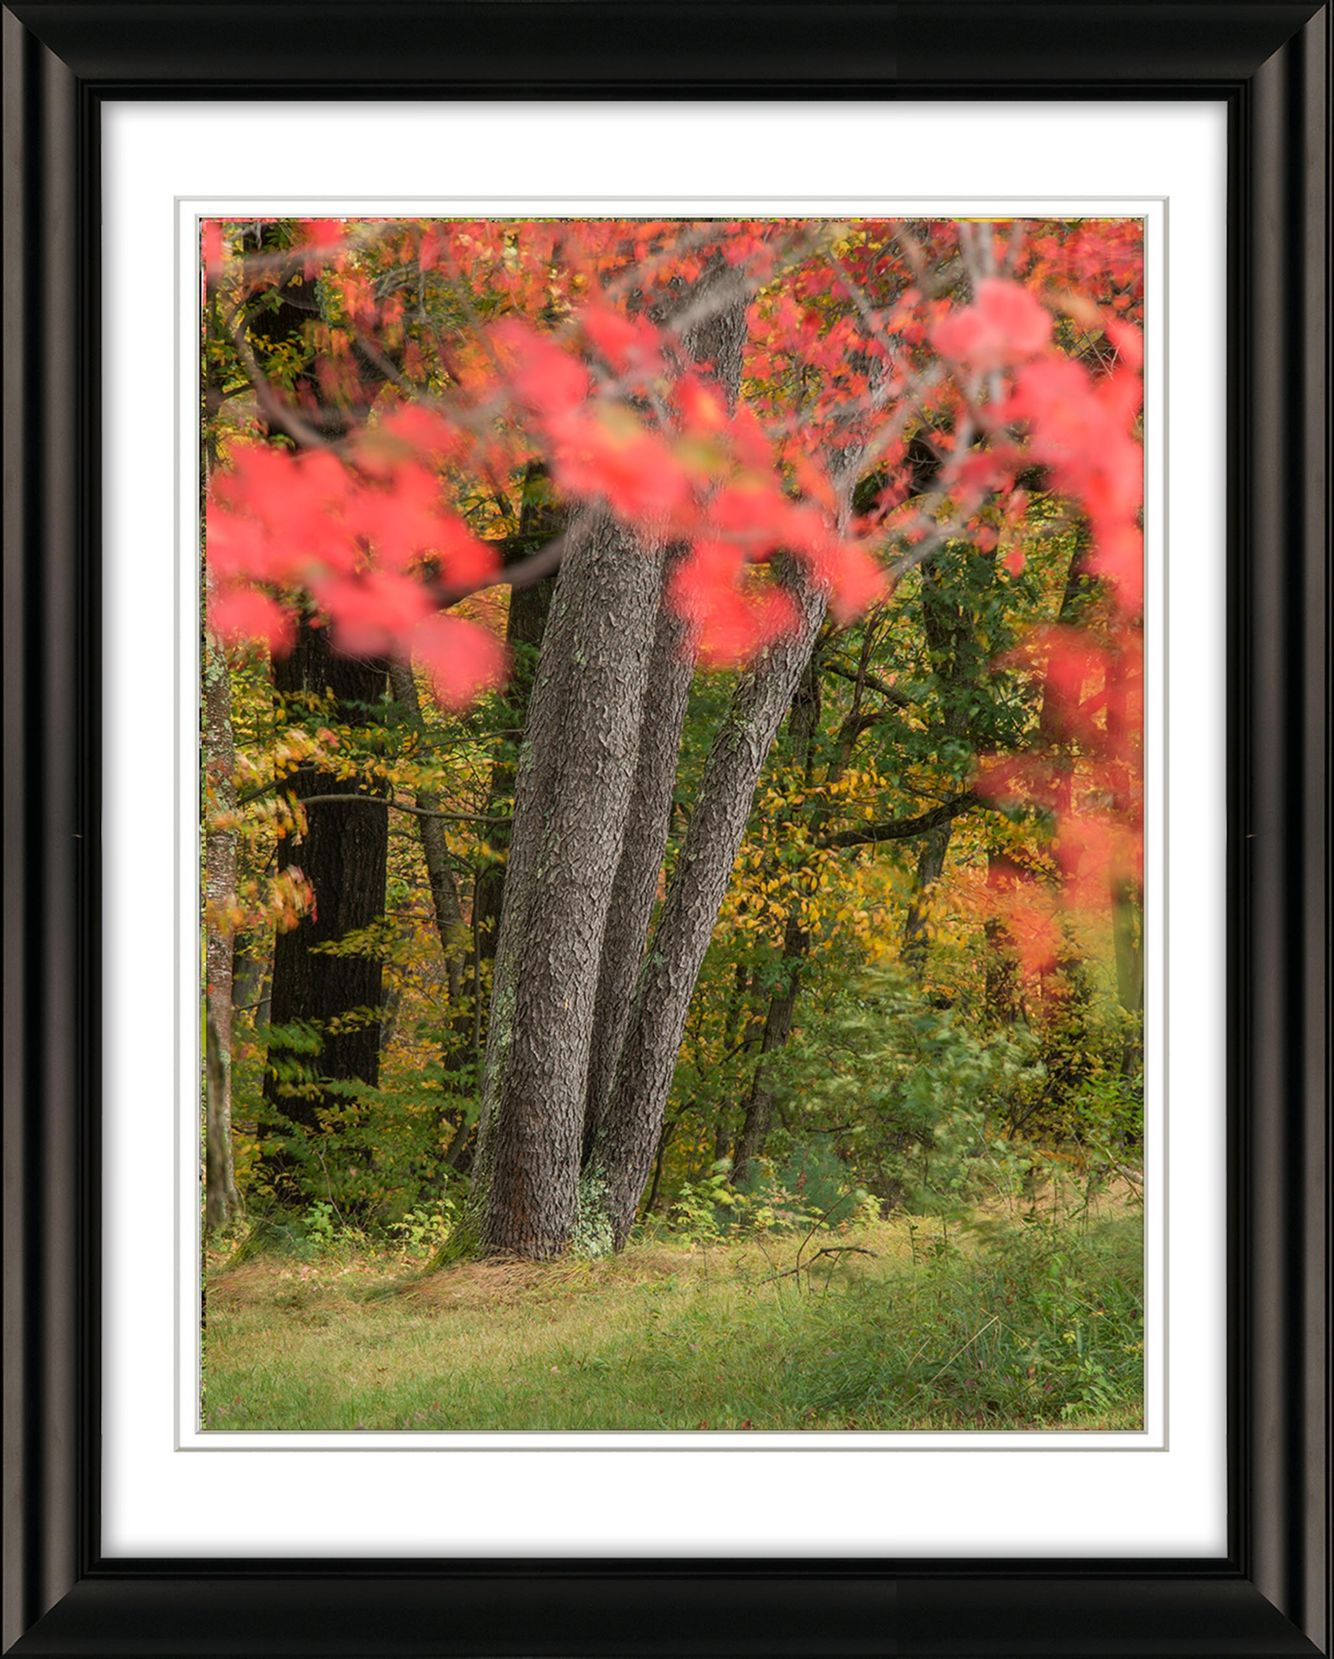 Frame-2993-Red-Leaves-Fall-Groff-Park-Livebooks-Opt.jpg